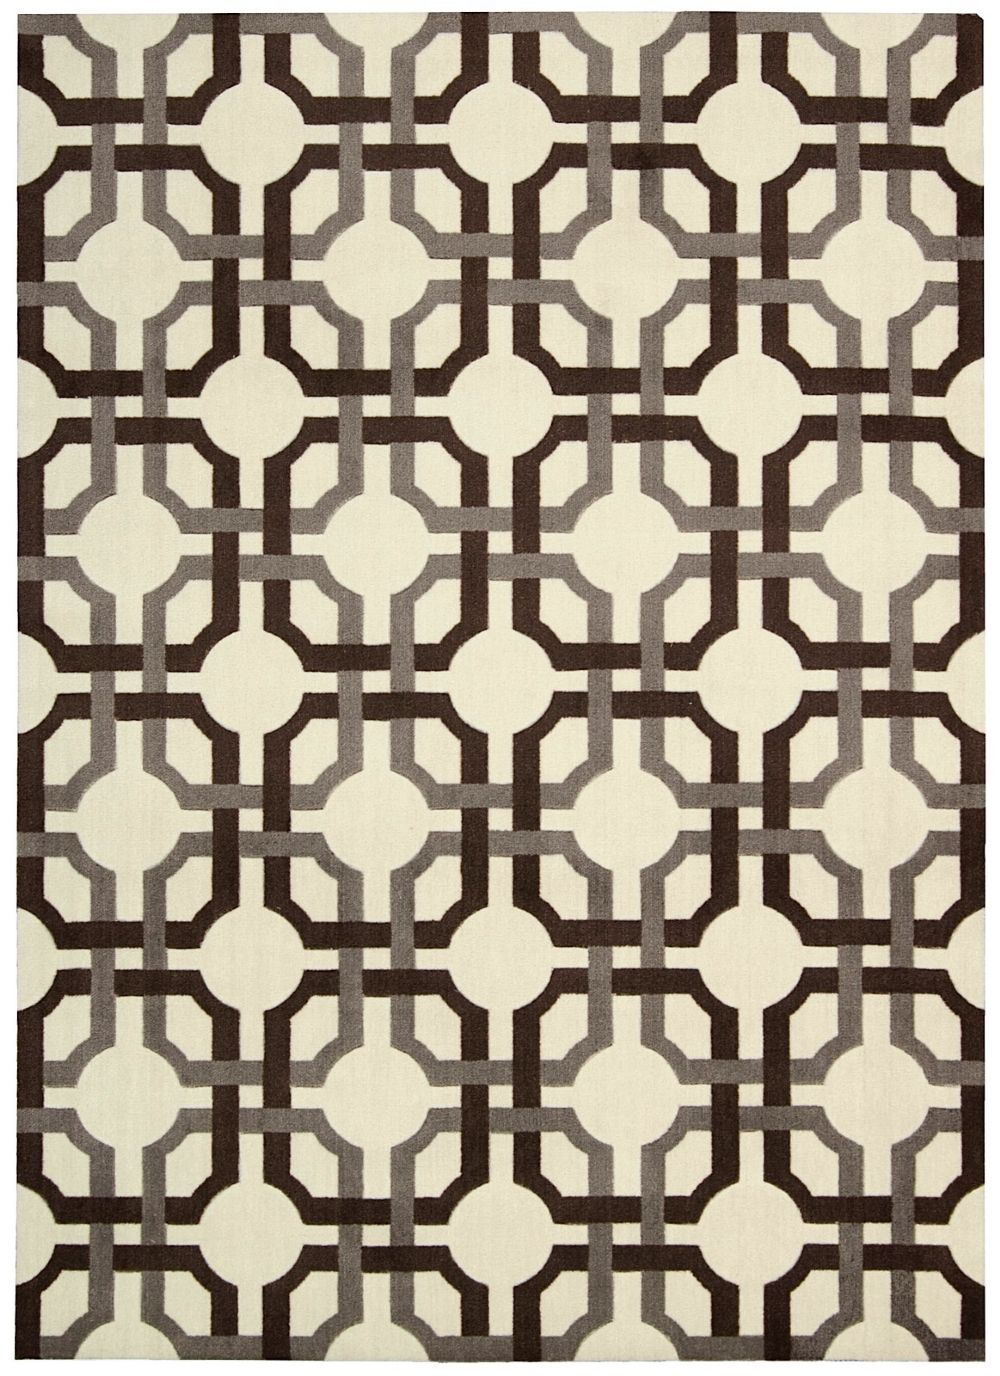 waverly artisanal delight contemporary area rug collection